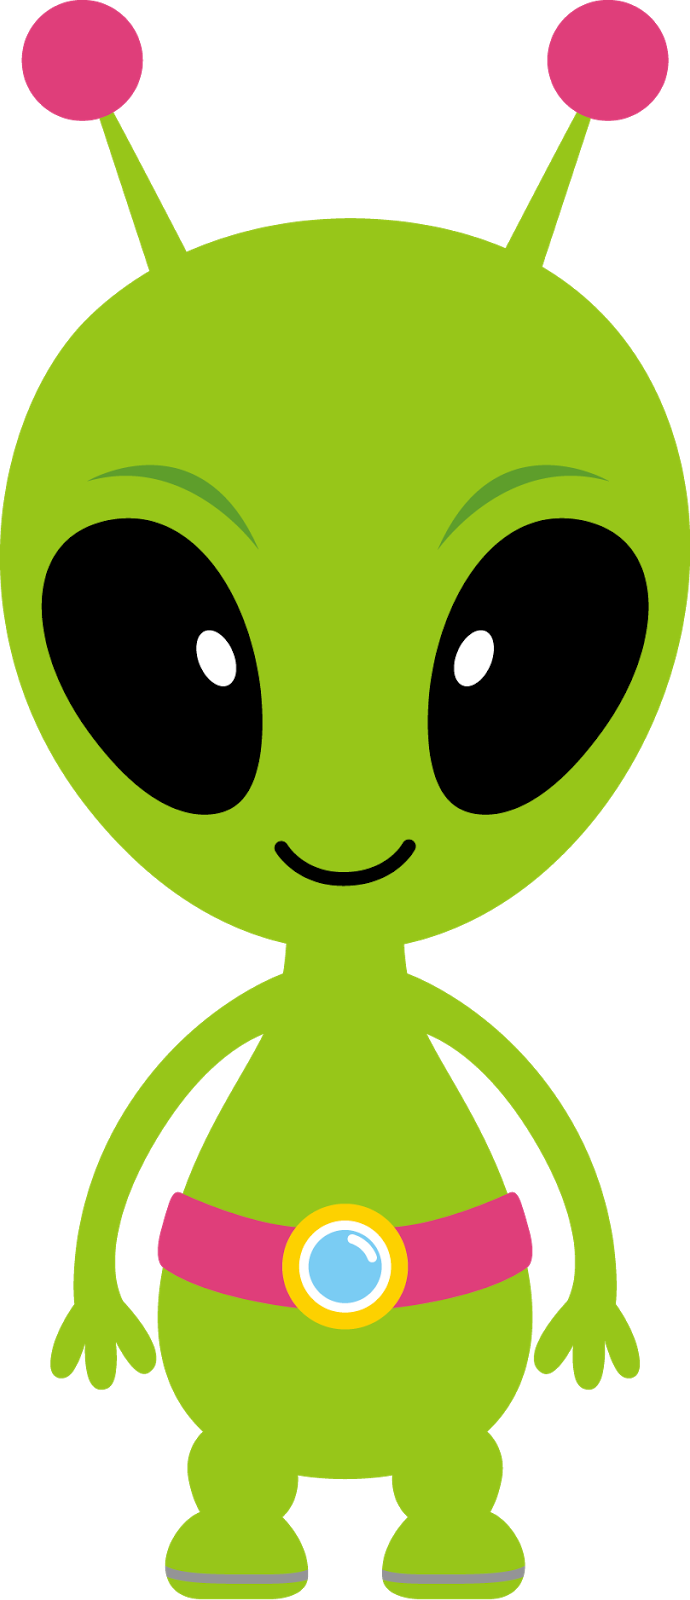 Sci Fi clipart cute alien spaceship #12